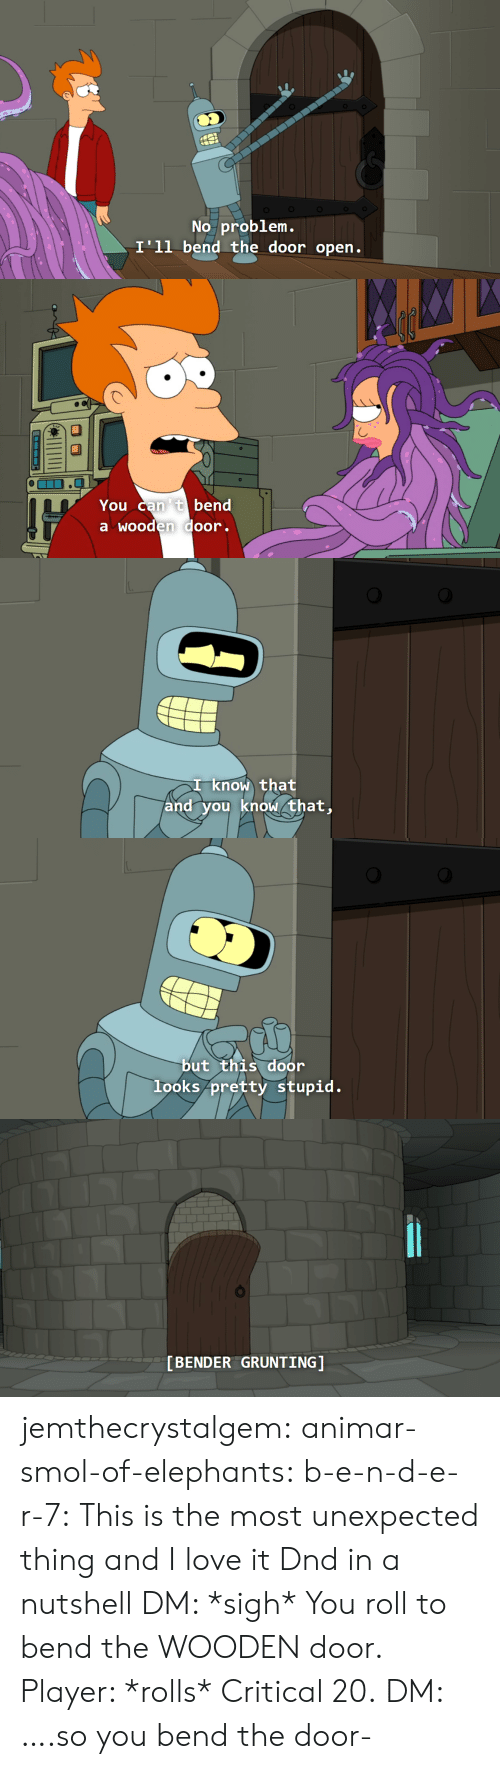 Bender: No problem.  I'll bend the door open.   You can 't bend  a wooden door.   I know that  and you know that,   but this door  looks pretty stupid.   [BENDER GRUNTING] jemthecrystalgem:  animar-smol-of-elephants:  b-e-n-d-e-r-7: This is the most unexpected thing and I love it Dnd in a nutshell   DM: *sigh* You roll to bend the WOODEN door. Player: *rolls* Critical 20. DM: ….so you bend the door-